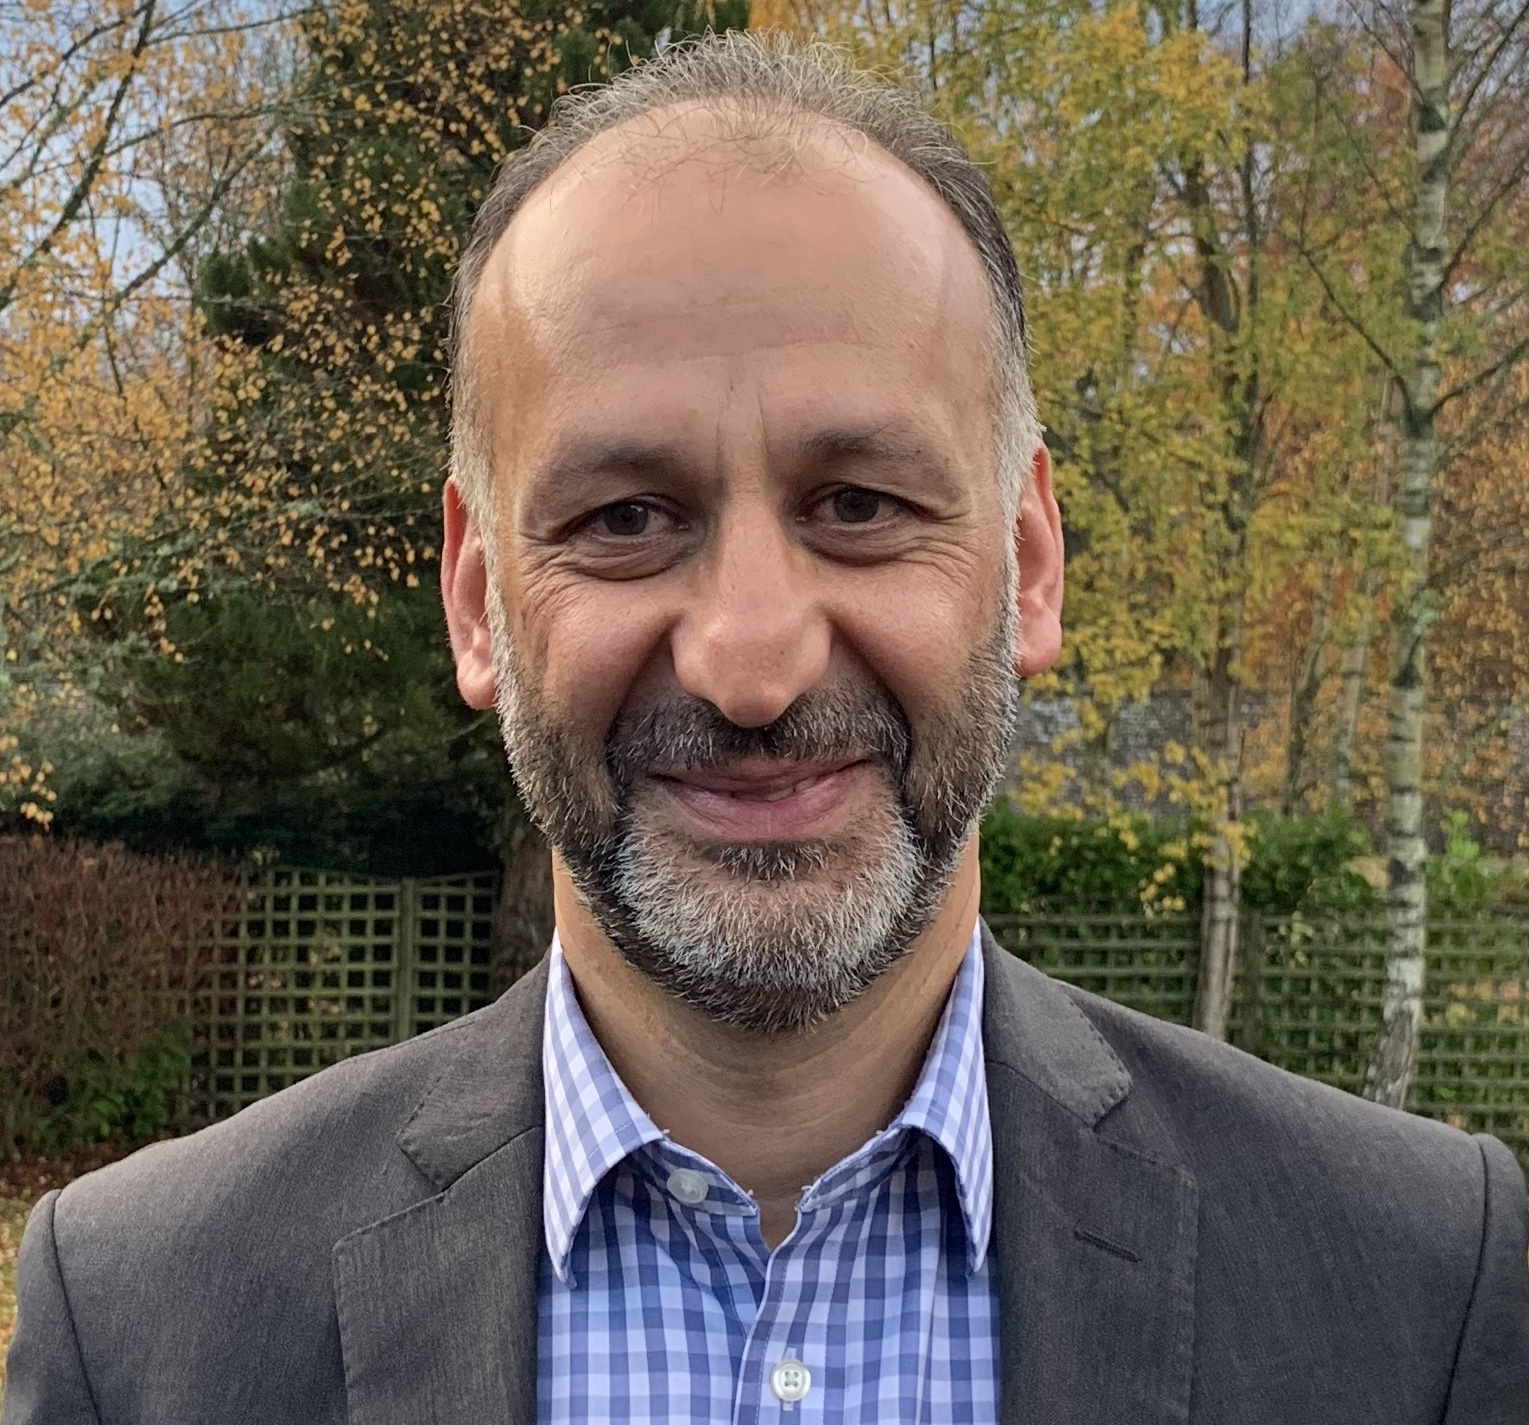 Mr Farzad Alipour-Tootoonchi - Consultant Orthopaedic & Trauma Surgeon - Mr Alipour is a consultant Orthopaedic and Trauma Surgeon based in Tayside. He has been a Trauma & Orthopaedic consultant in NHS Tayside since 2004.Mr Alipour graduated his medical degree (MBCHB), from University of Dundee in 1991. He has completed his Trauma and Orthopaedic training in Tayside and Inverness, obtaining his FRCS Ed (Trauma & Orthopaedic) qualification in 2001. This was followed by a year of fellowship training at the Alfred Hospital, Melbourne, Australia in lower limb arthroplasty (Hip & Knee Replacements), major trauma and reconstructive Orthopaedic surgery. He is fully registered with the General Medical Council as an Orthopaedic and Trauma Surgeon.Mr Alipour's main elective Orthopaedic sub-speciality interests are in hip and knee replacement procedures, as well as knee arthroscopic (key hole) surgery. He has extensive experience in these procedures, both in the NHS and in private health care settings.Mr Alipour is the current lead for the East of Scotland Major Trauma Ward based at Ninewells Hospital, Dundee. He has vast experience in the management of acute orthopaedic trauma as well as reconstructive trauma surgery. He has been the immediate past clinical governance lead of the Orthopaedic and Trauma department of NHS Tayside (2011-2016). He is a senior clinical teacher to the undergraduate and postgraduate masters students of the University of Dundee.Mr Alipour has offered private practice treatment from the BMI Fernrae Hospital in Dundee since 2005, and following closure of this unit in April 2019, he has transferred his private practicing privileges and admission rights to the BMI Albyn Hospital in Aberdeen as well as the BMI Kings Park Hospital in Stirling.Mr Alipour offers consultation clinics on all aspects of hip and knee problems at Tayside Complete Health clinic in Dundee, and undertakes surgical treatments at the Albyn and Kings Park Hospitals in Aberdeen and Stir